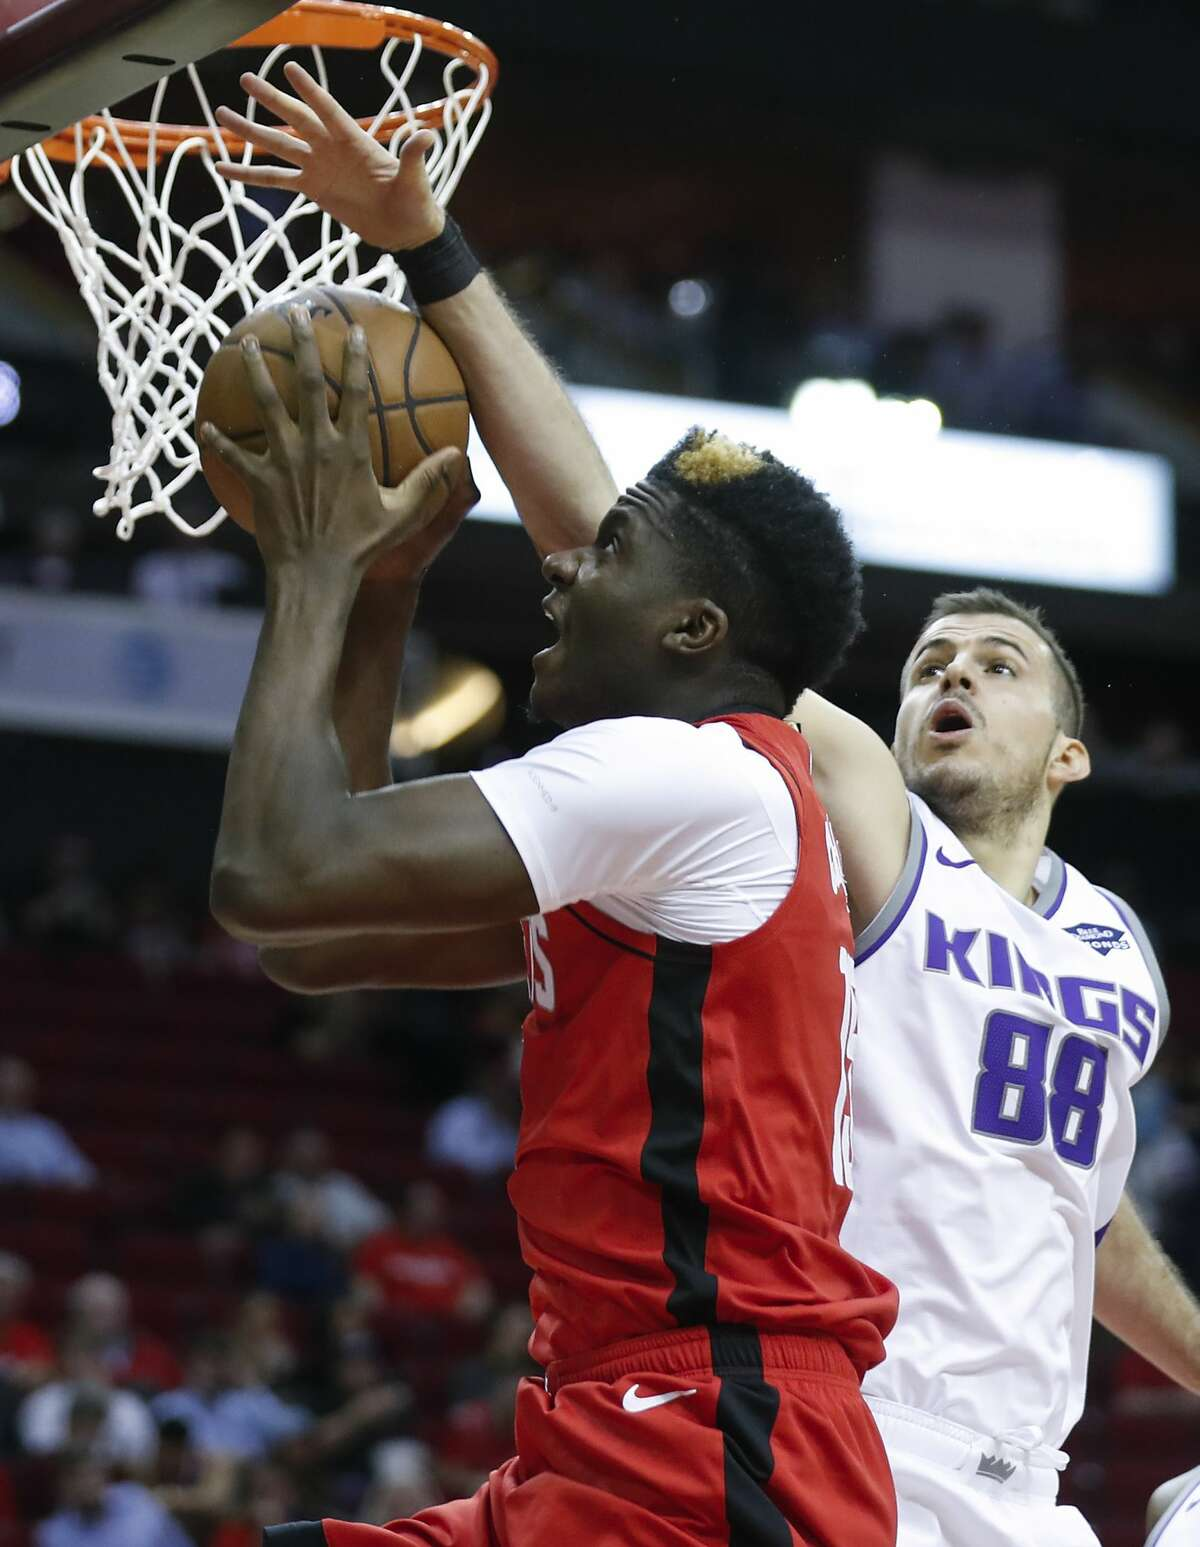 Houston Rockets center Clint Capela (15) takes a shot with Sacramento Kings forward Nemanja Bjelica (88) defending during the first half of an NBA basketball game at Toyota Center on Monday, Dec. 9, 2019, in Houston.